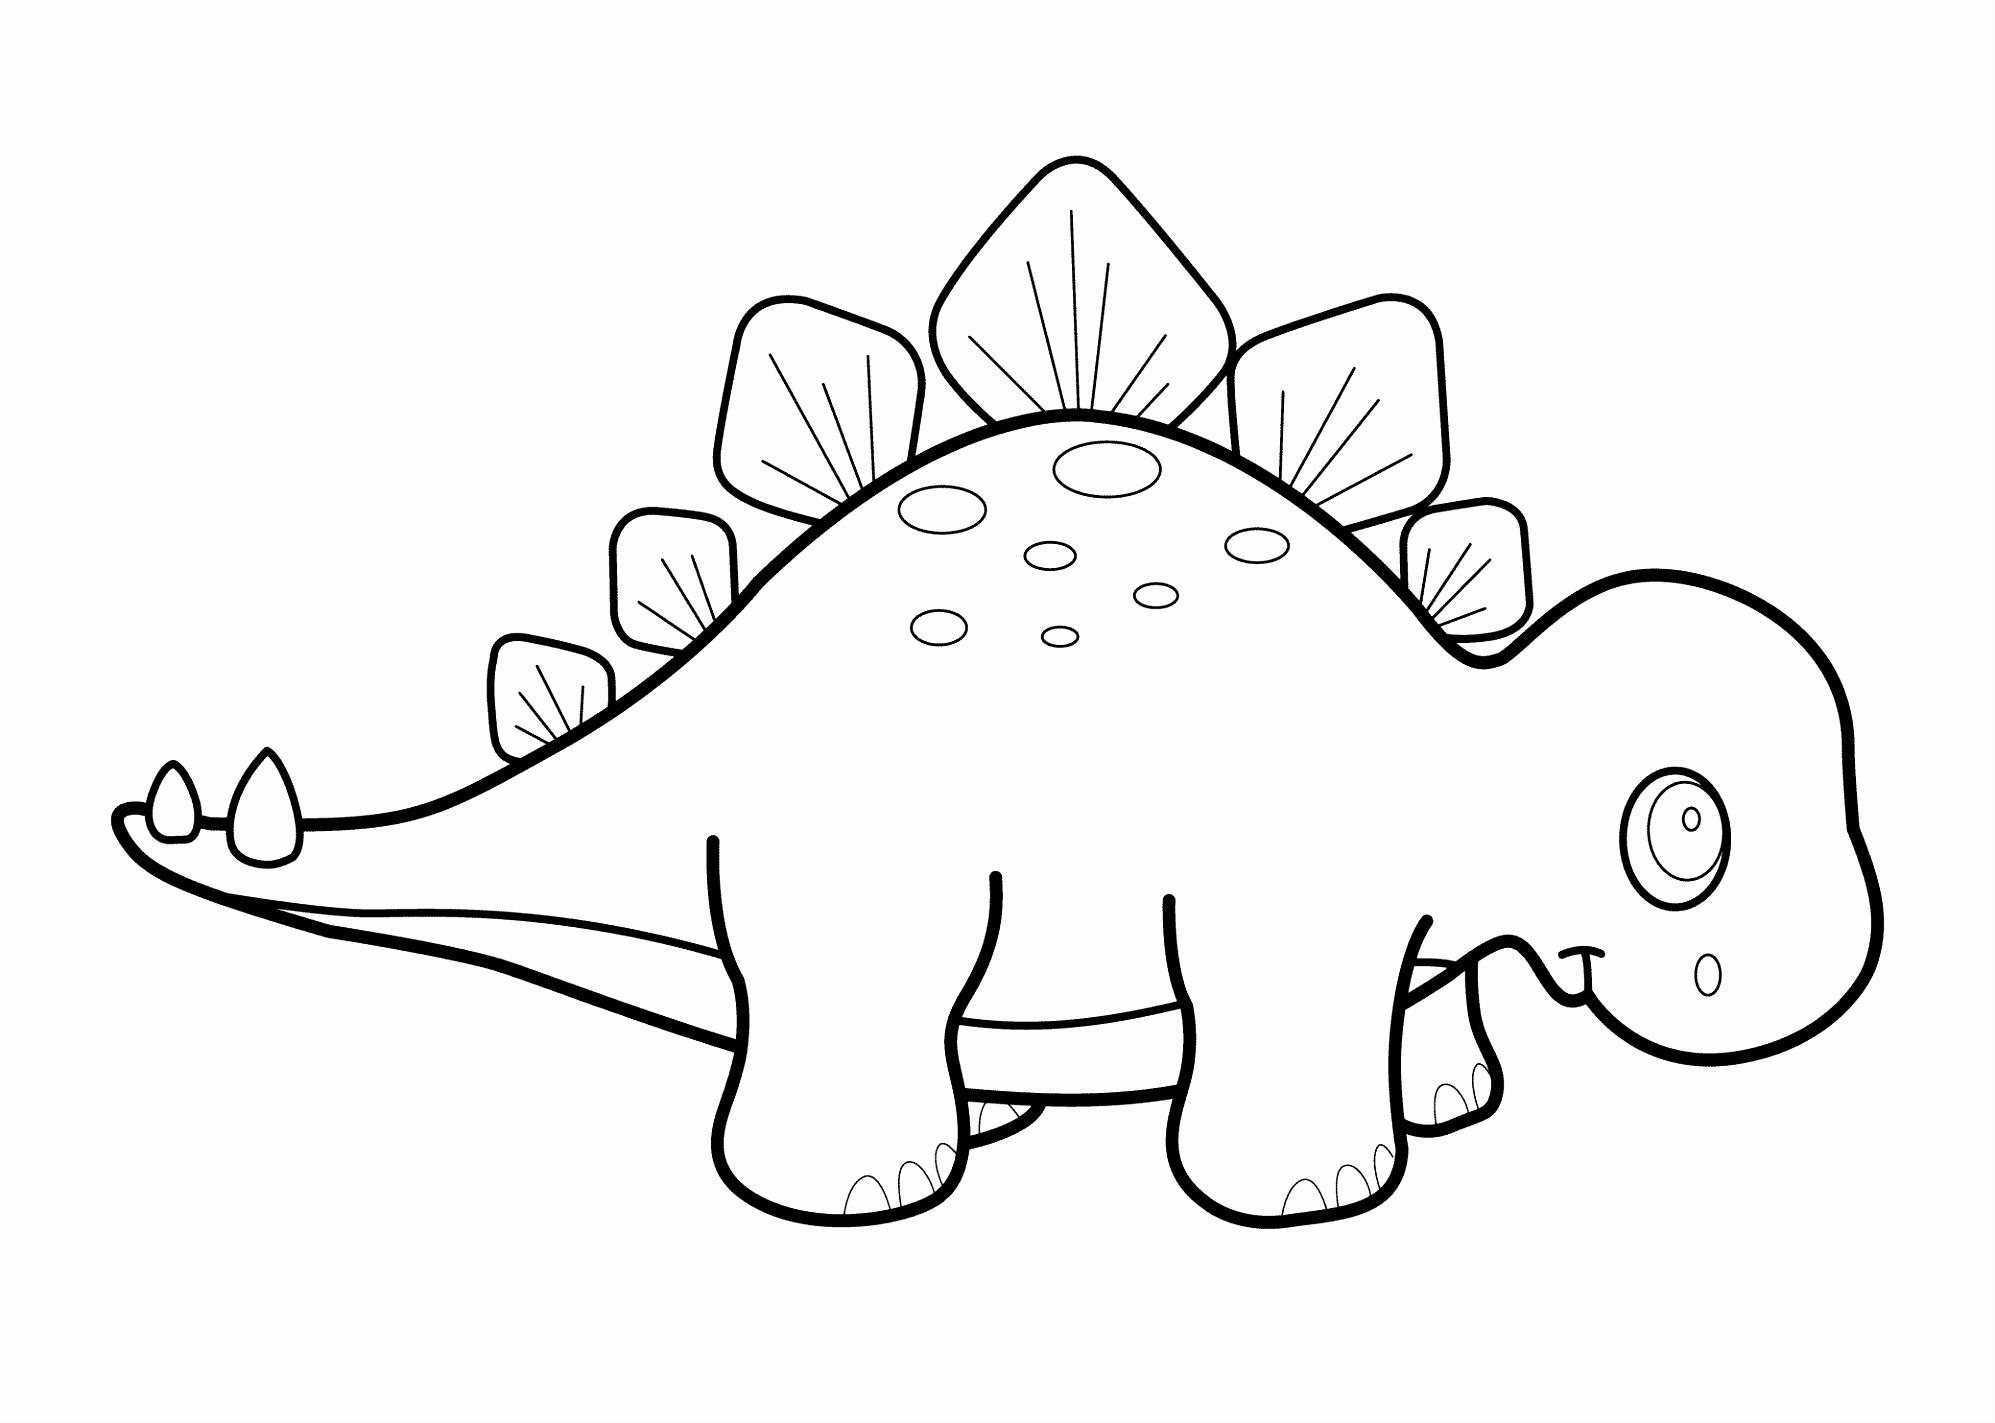 Little dinosaur stegosaurus cartoon coloring pages for kids